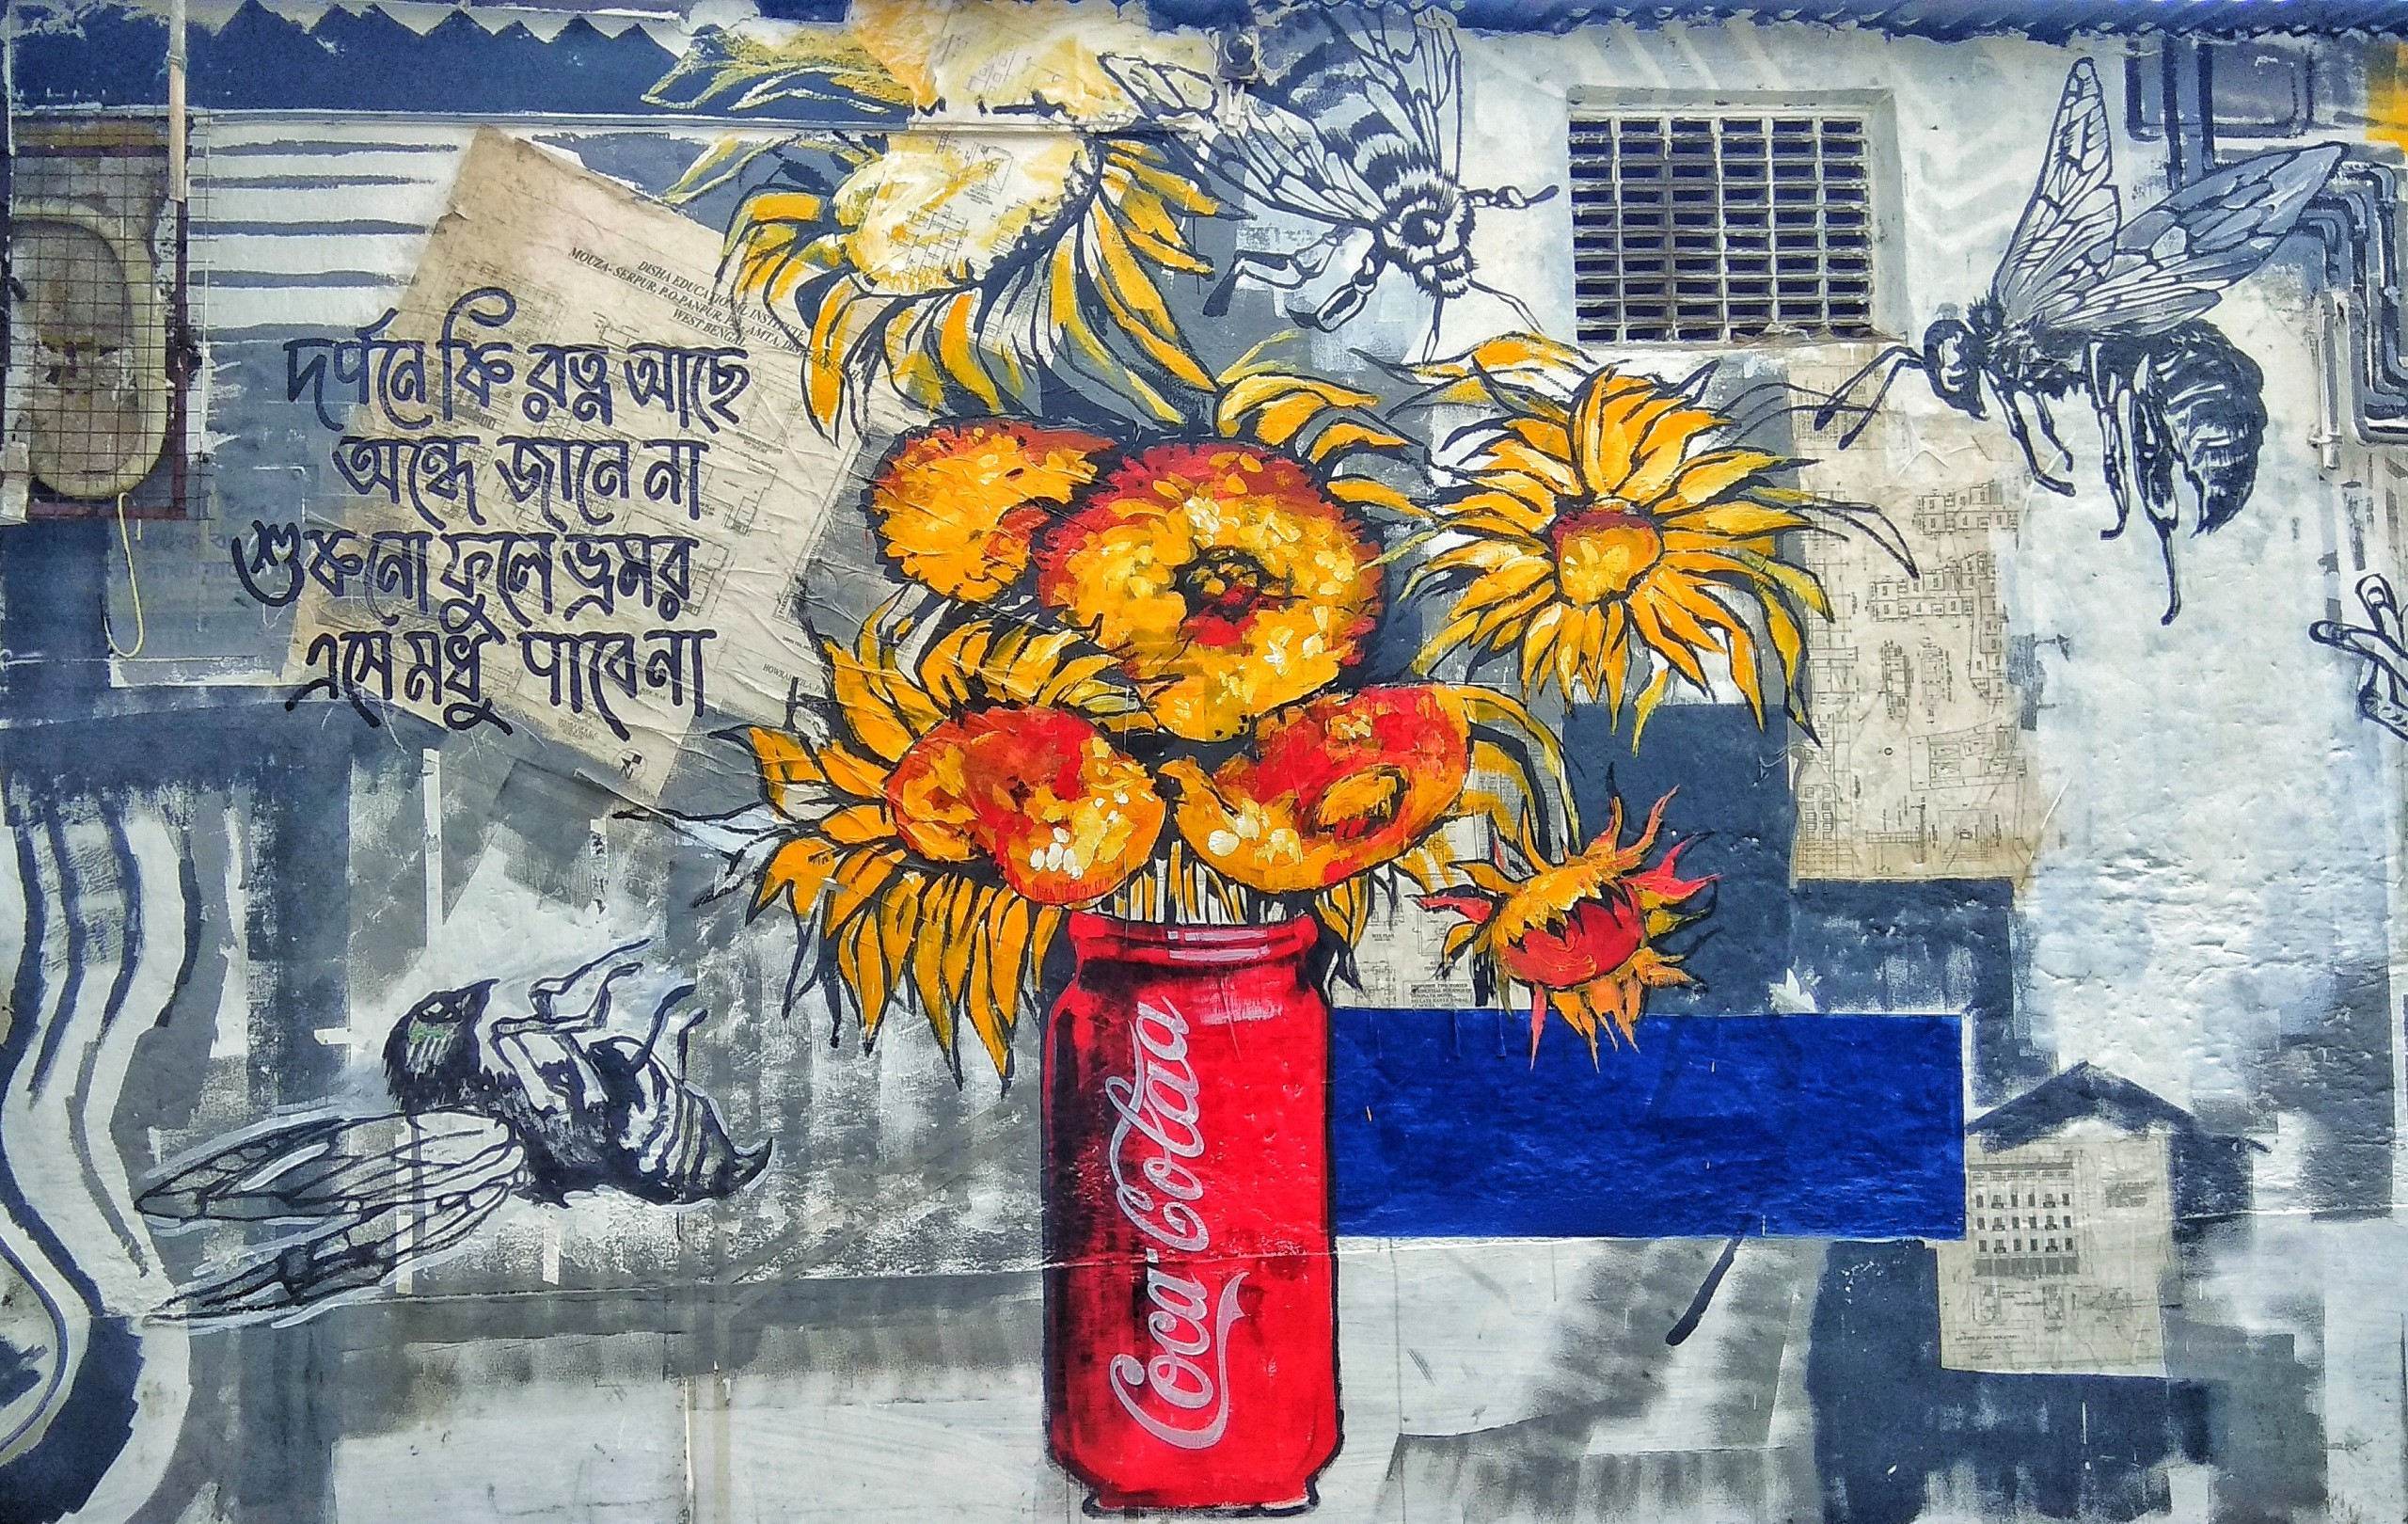 Wall Art with Bengali Text